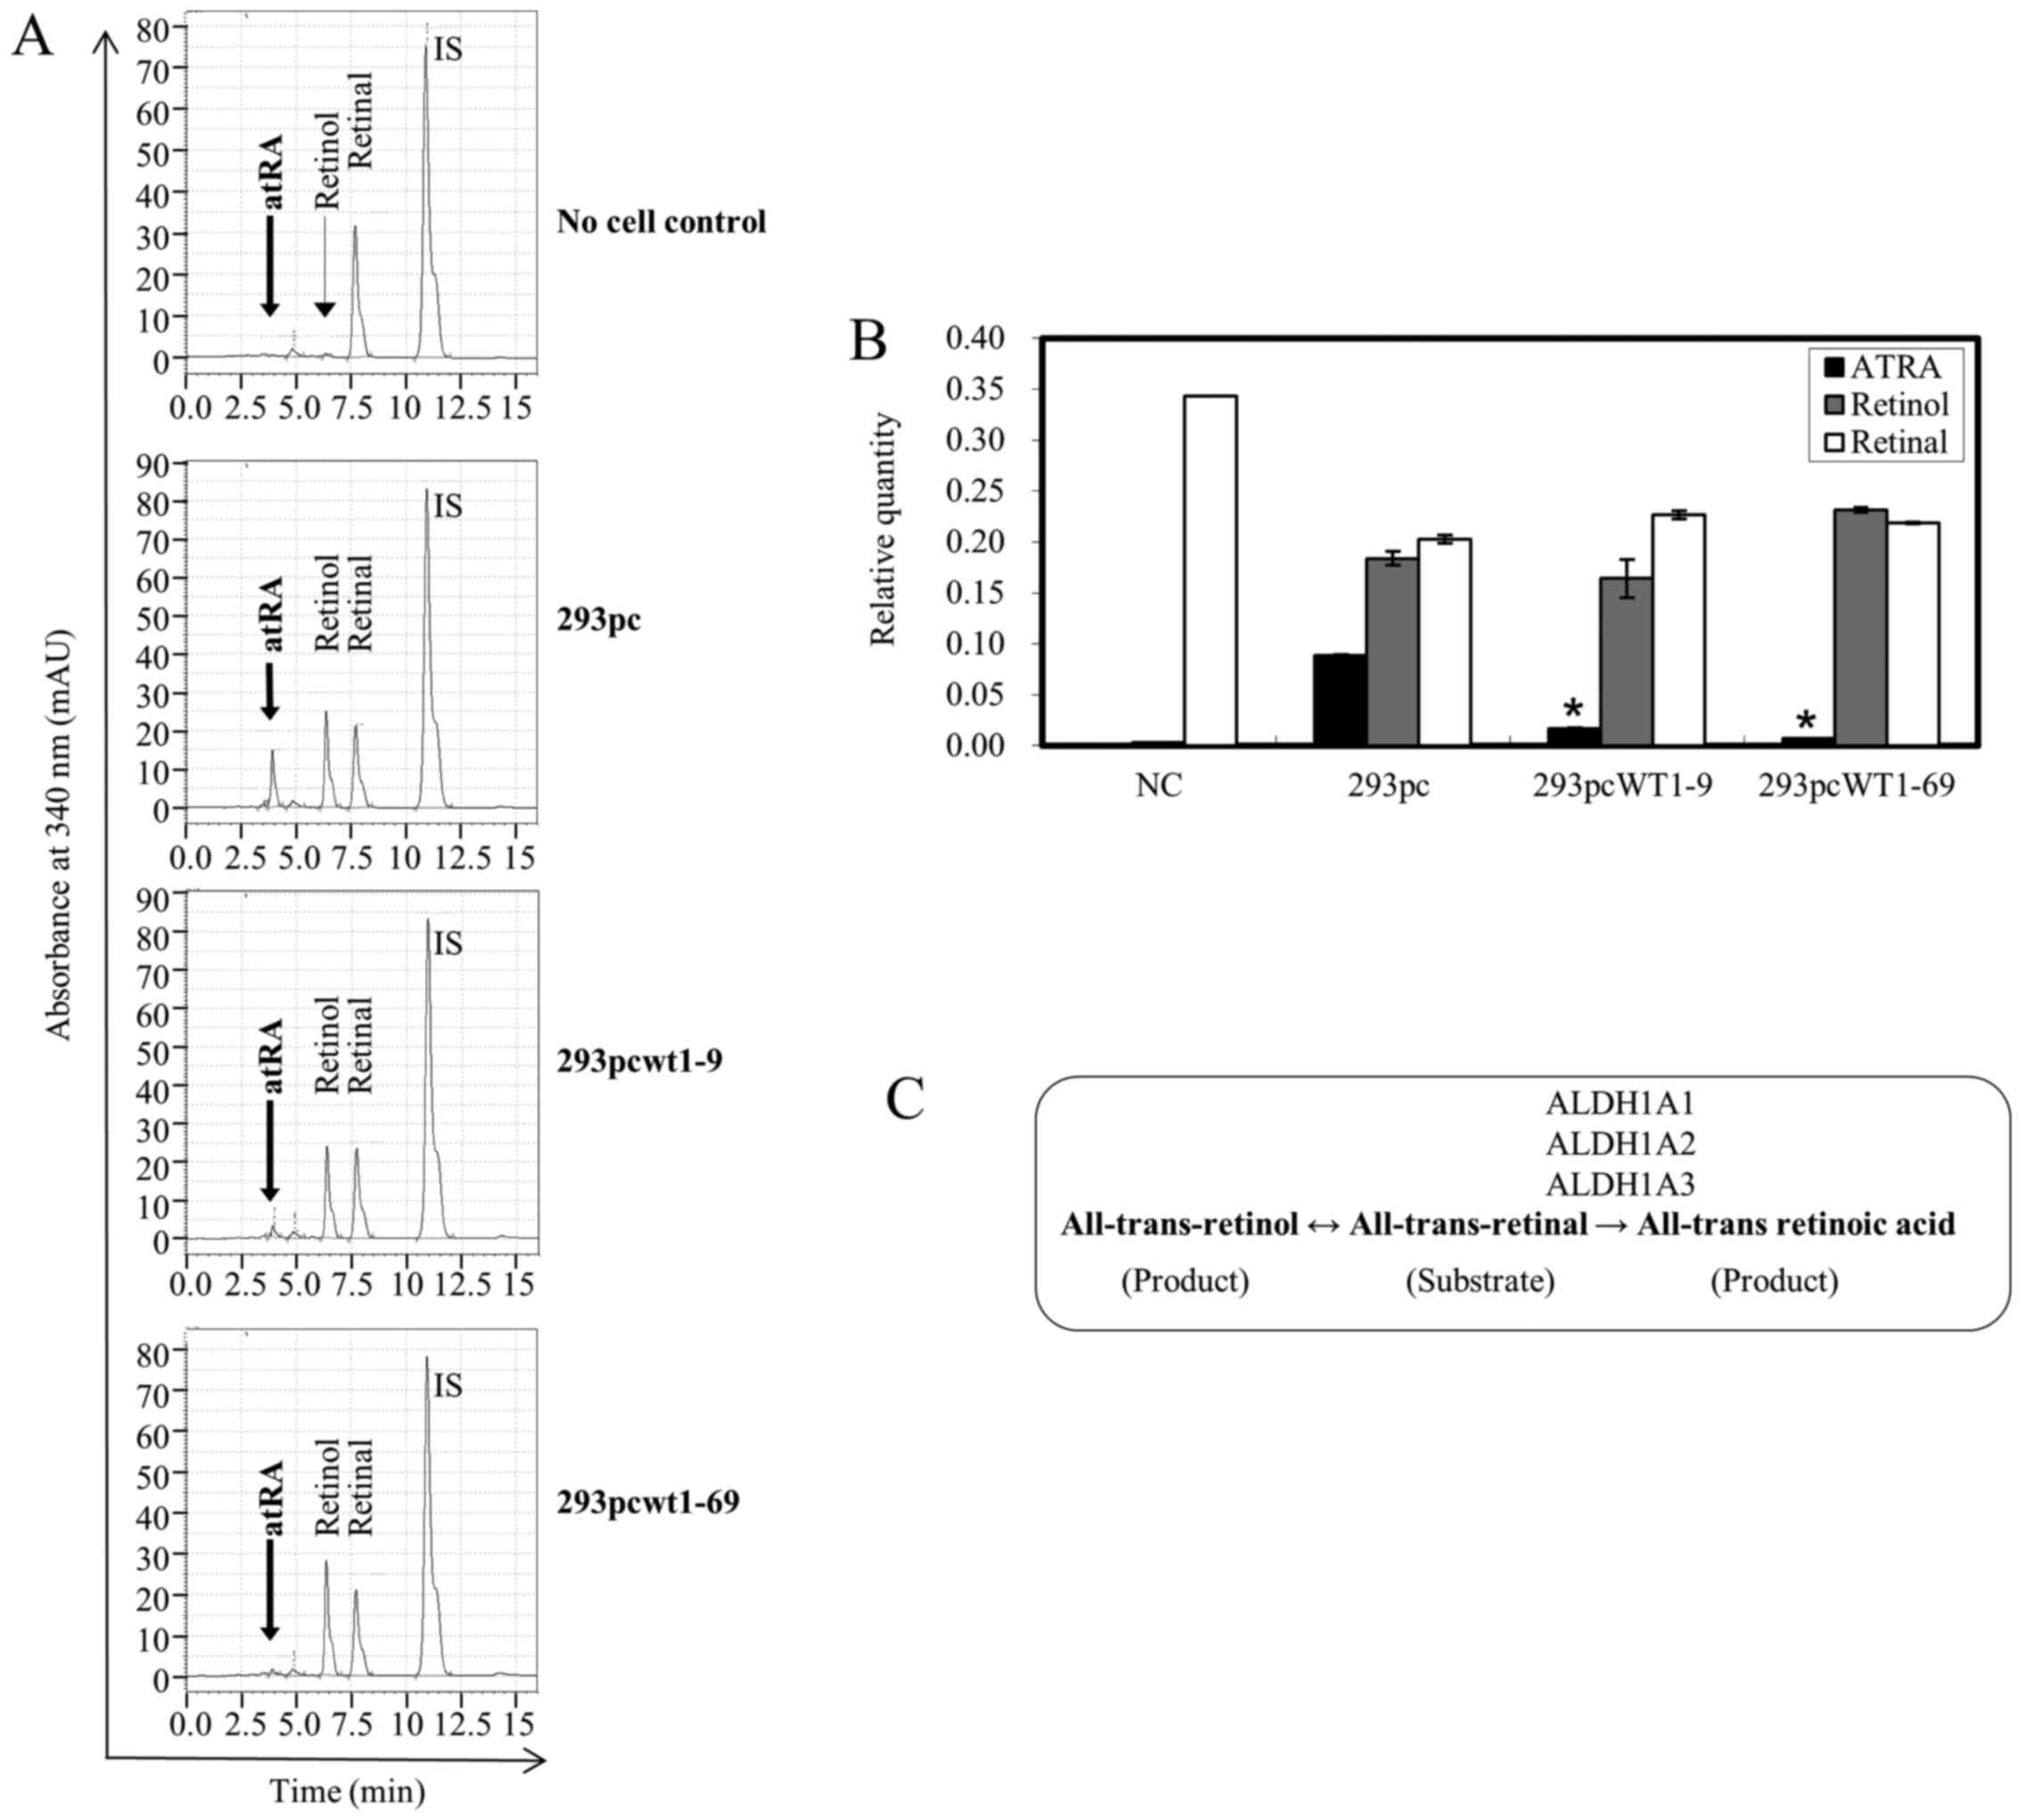 Regulation of retinoic acid synthetic enzymes by WT1 and